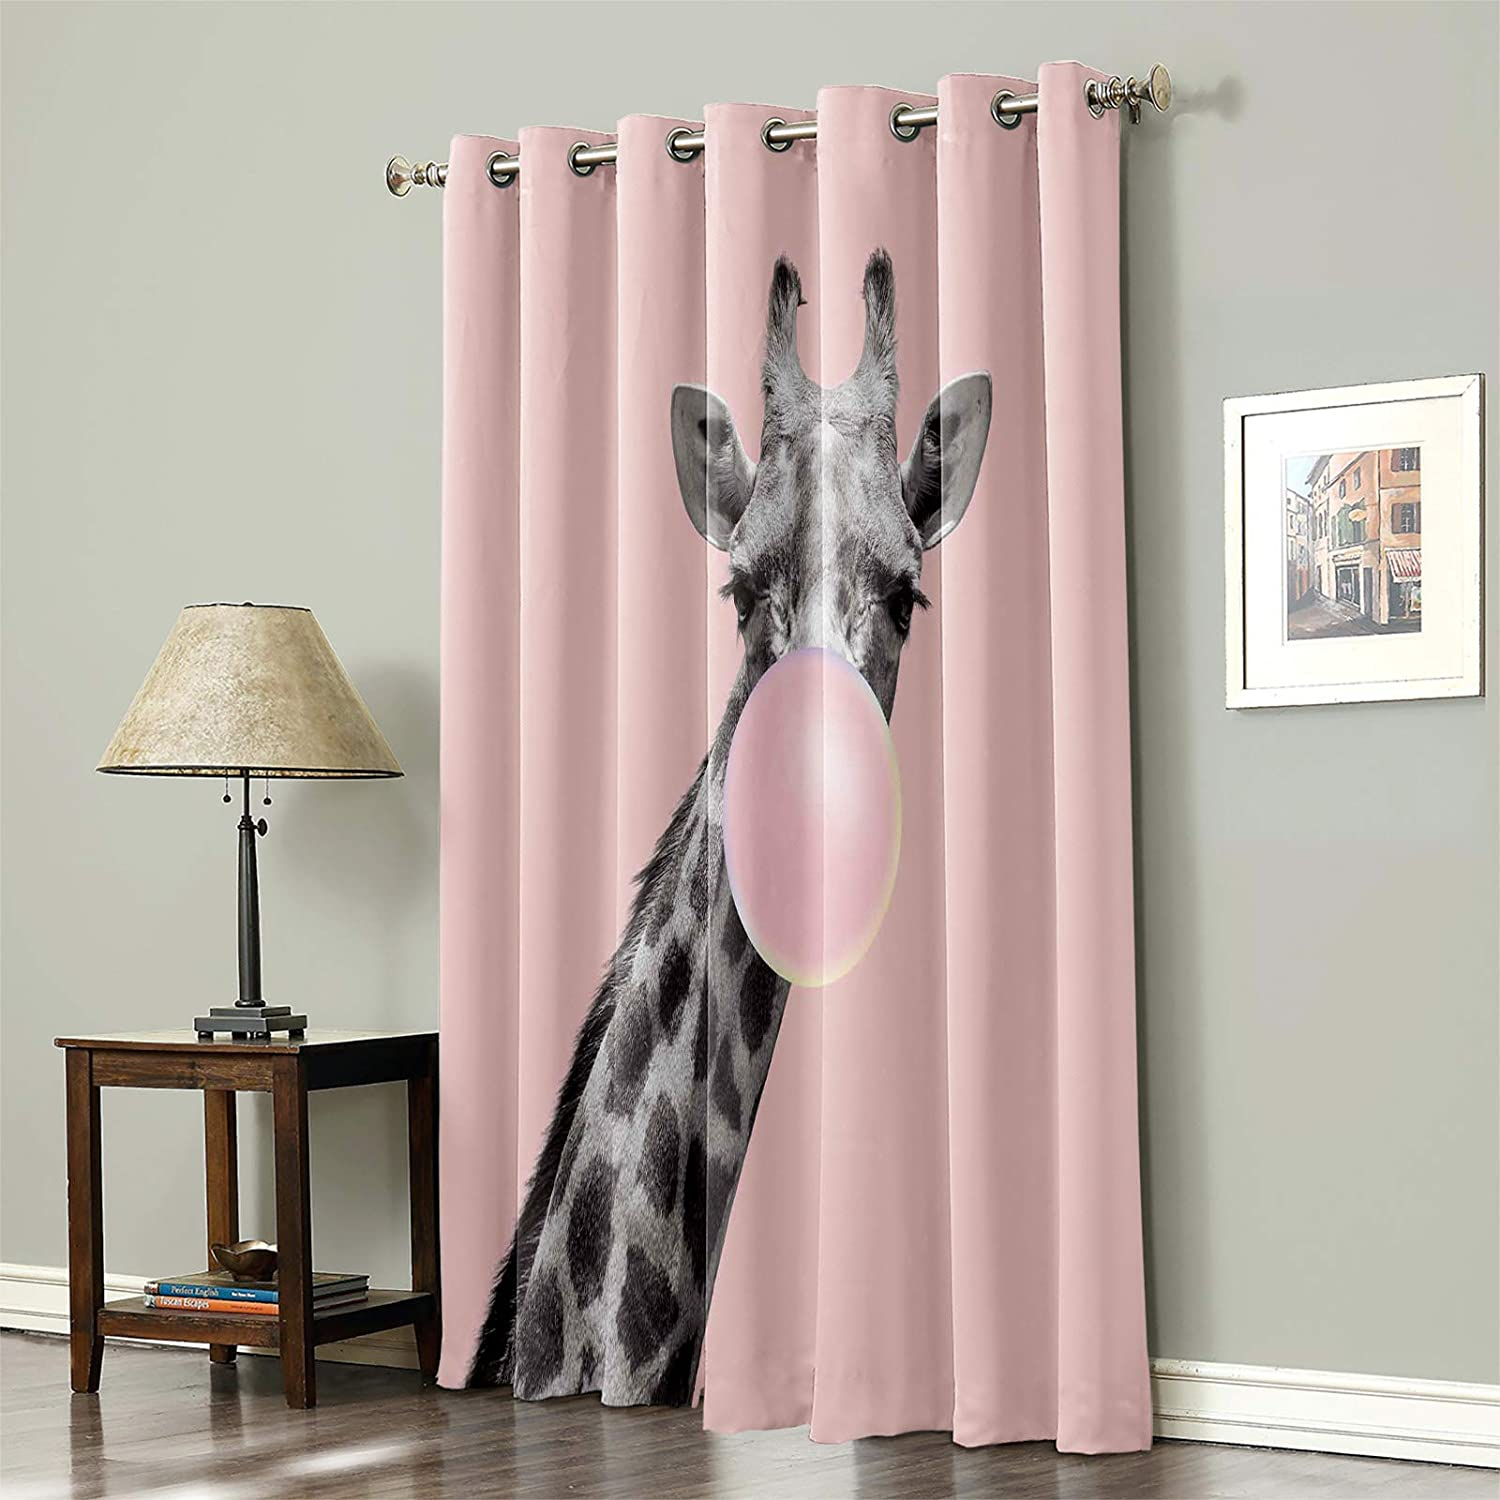 FAMILYDECOR Blackout Curtain Bombing free Daily bargain sale shipping Thermal 1 Window Insulated